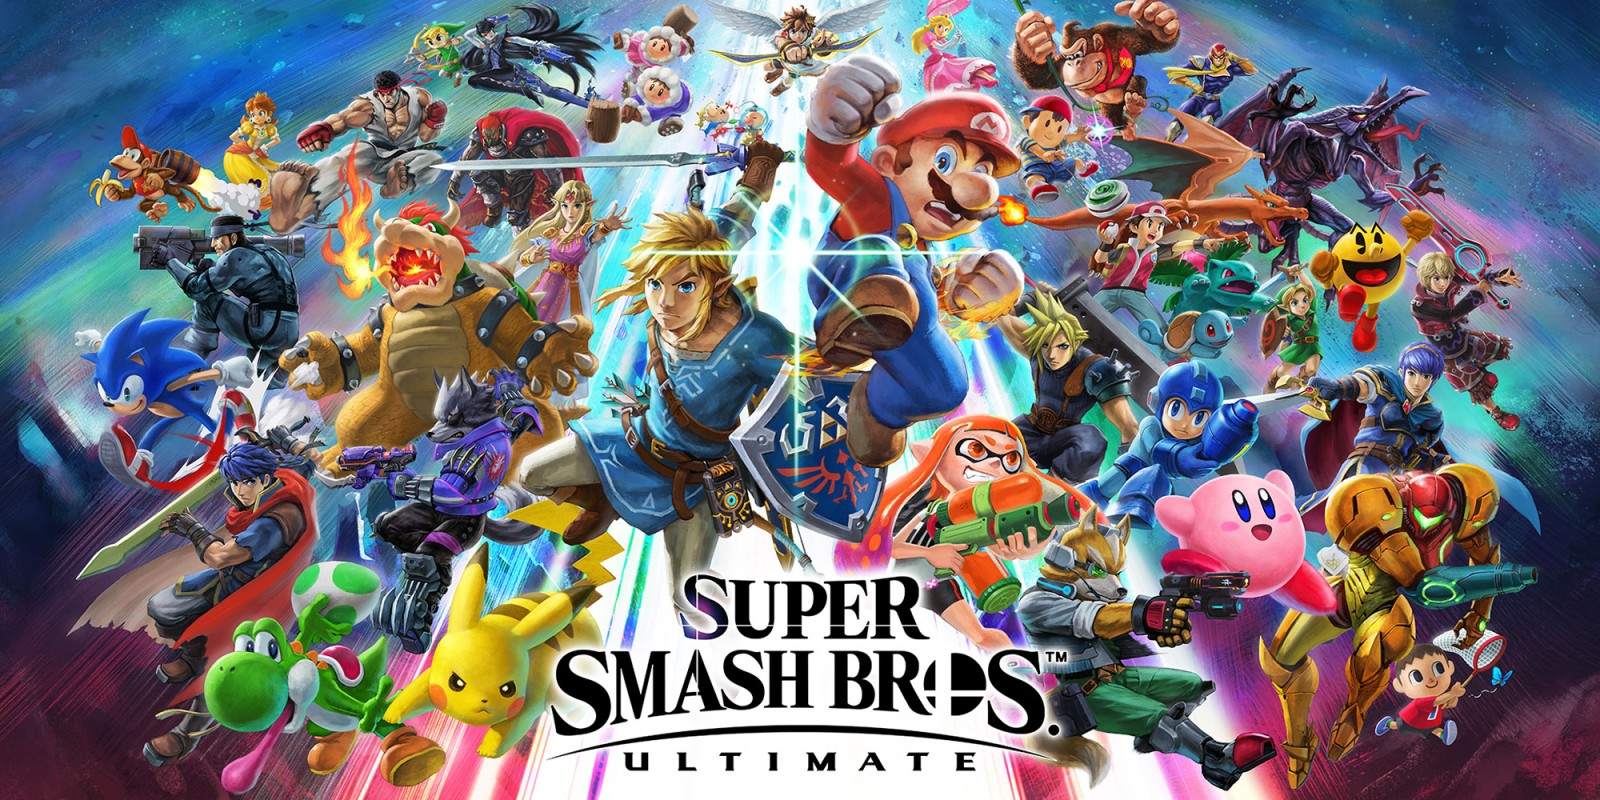 Super-Smash-Bros-Melee